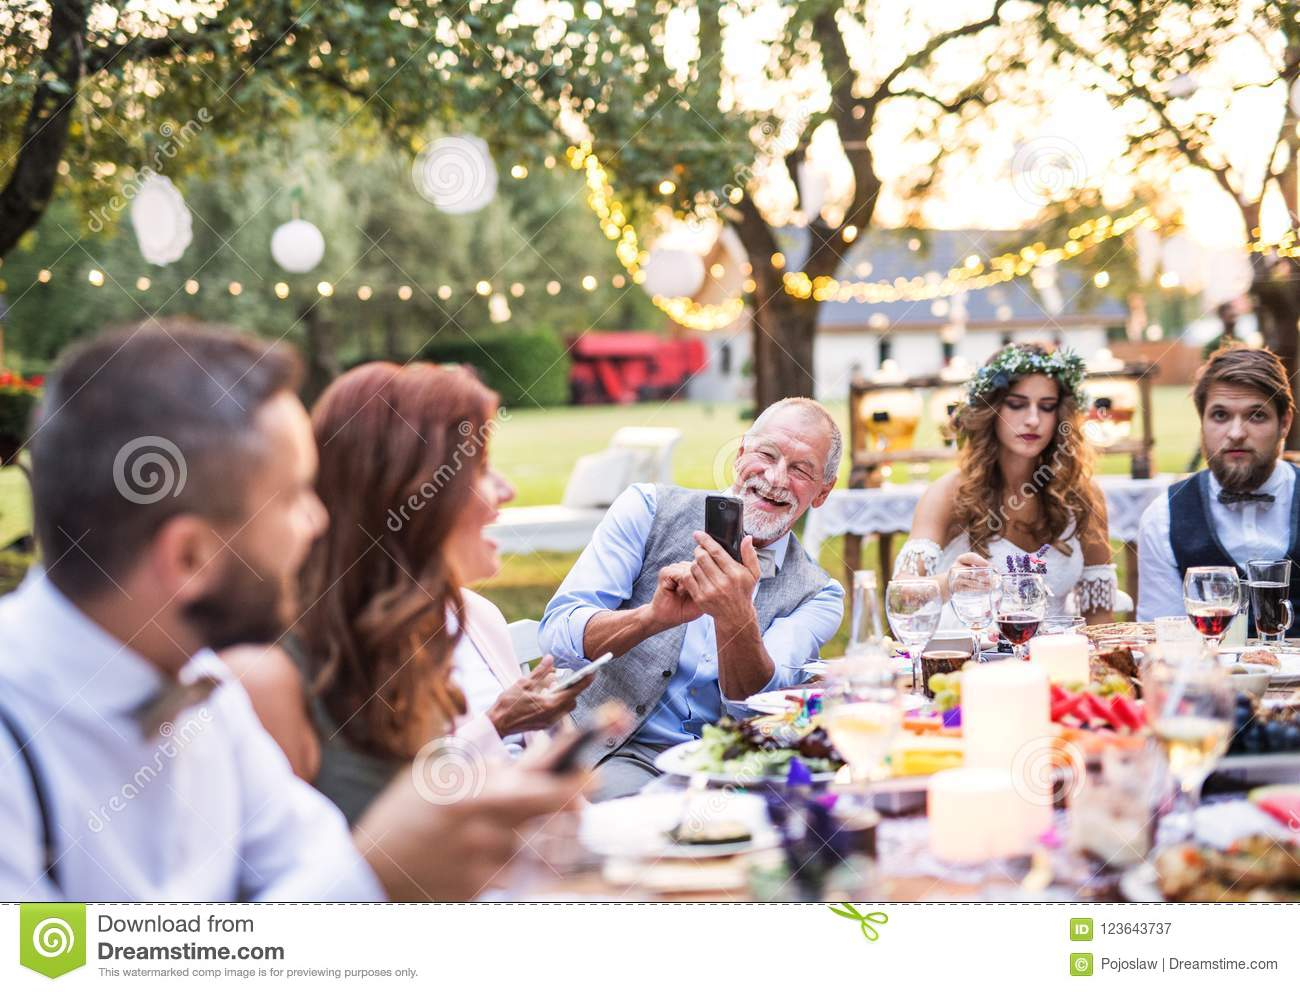 A senior man taking selfie at the wedding reception outside in the backyard.